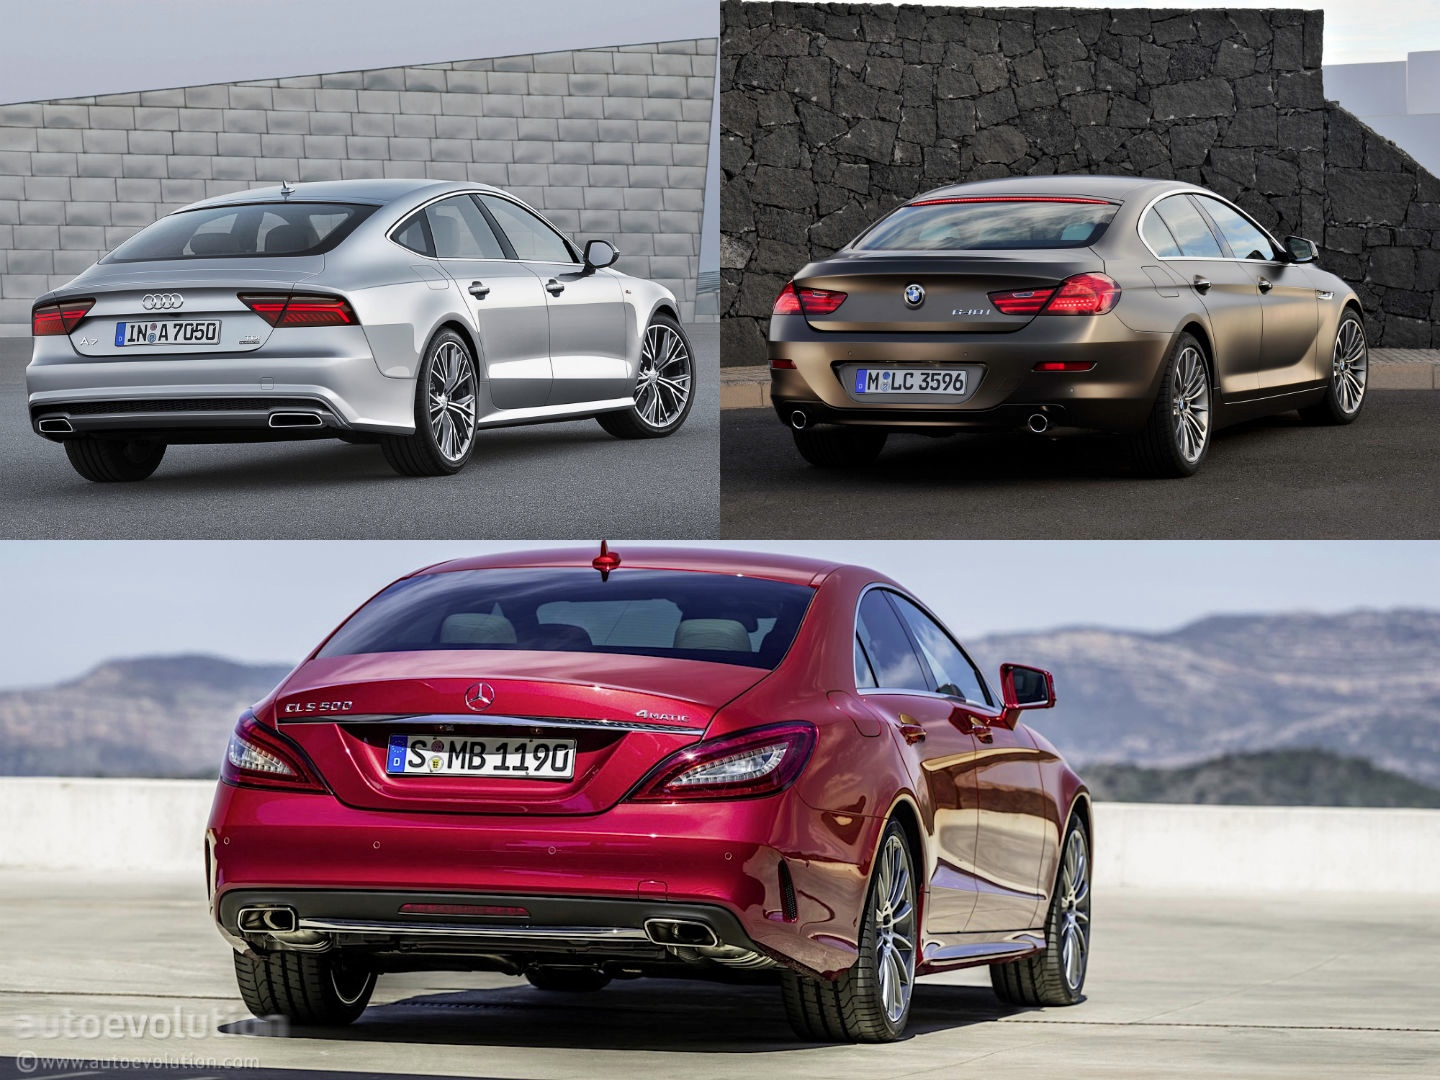 Mercedes Benz Cls Vs Audi A7 Vs Bmw 6 Gran Coupe Design